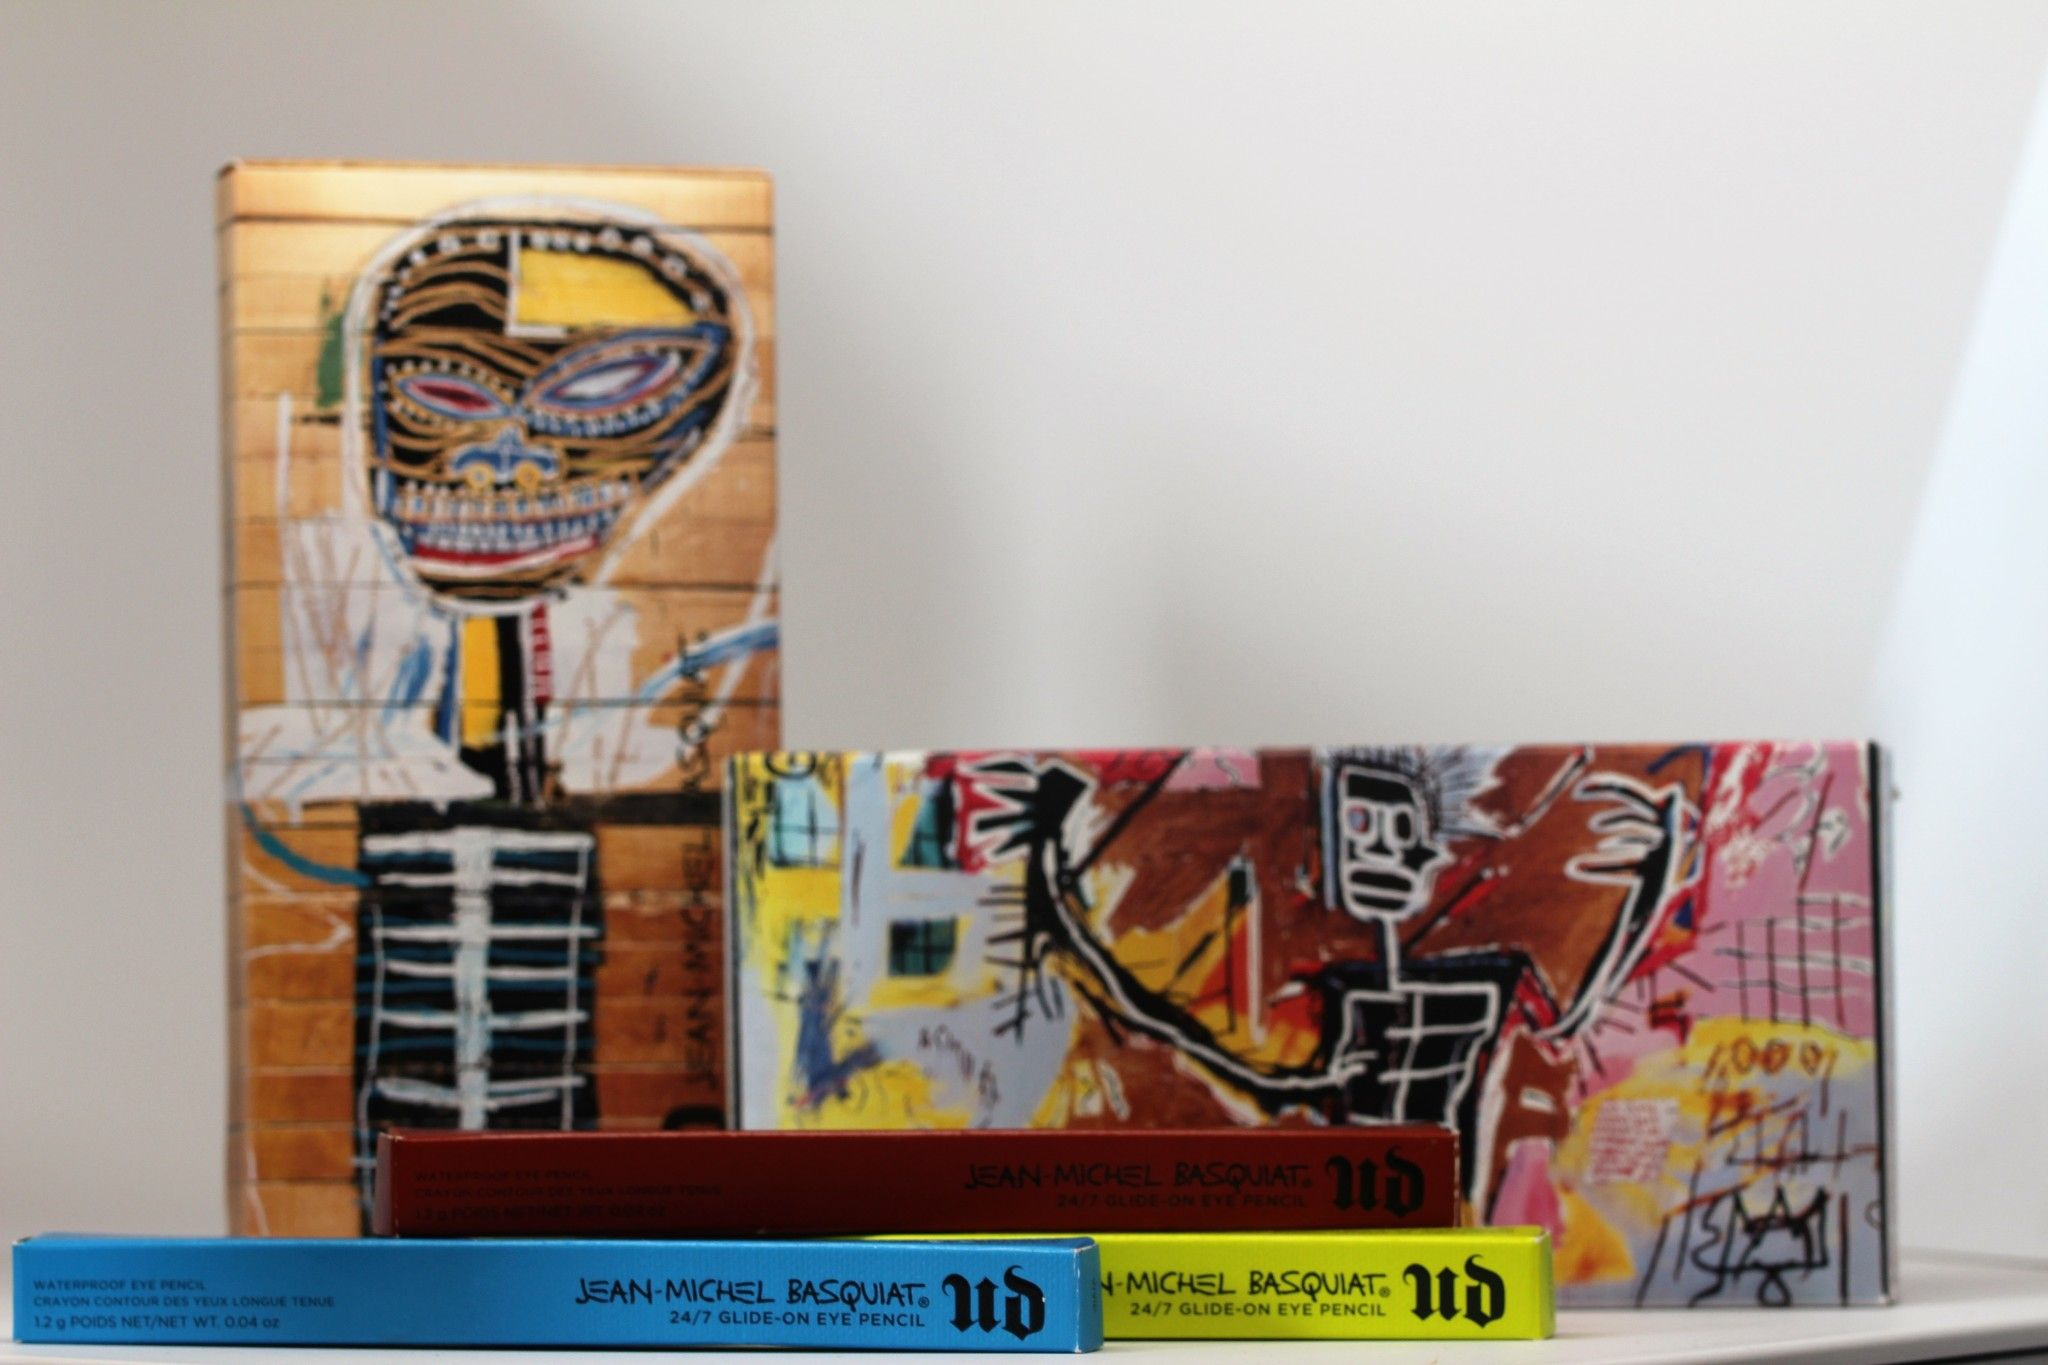 Urban decay x basquiat more from the collaboration for eyes